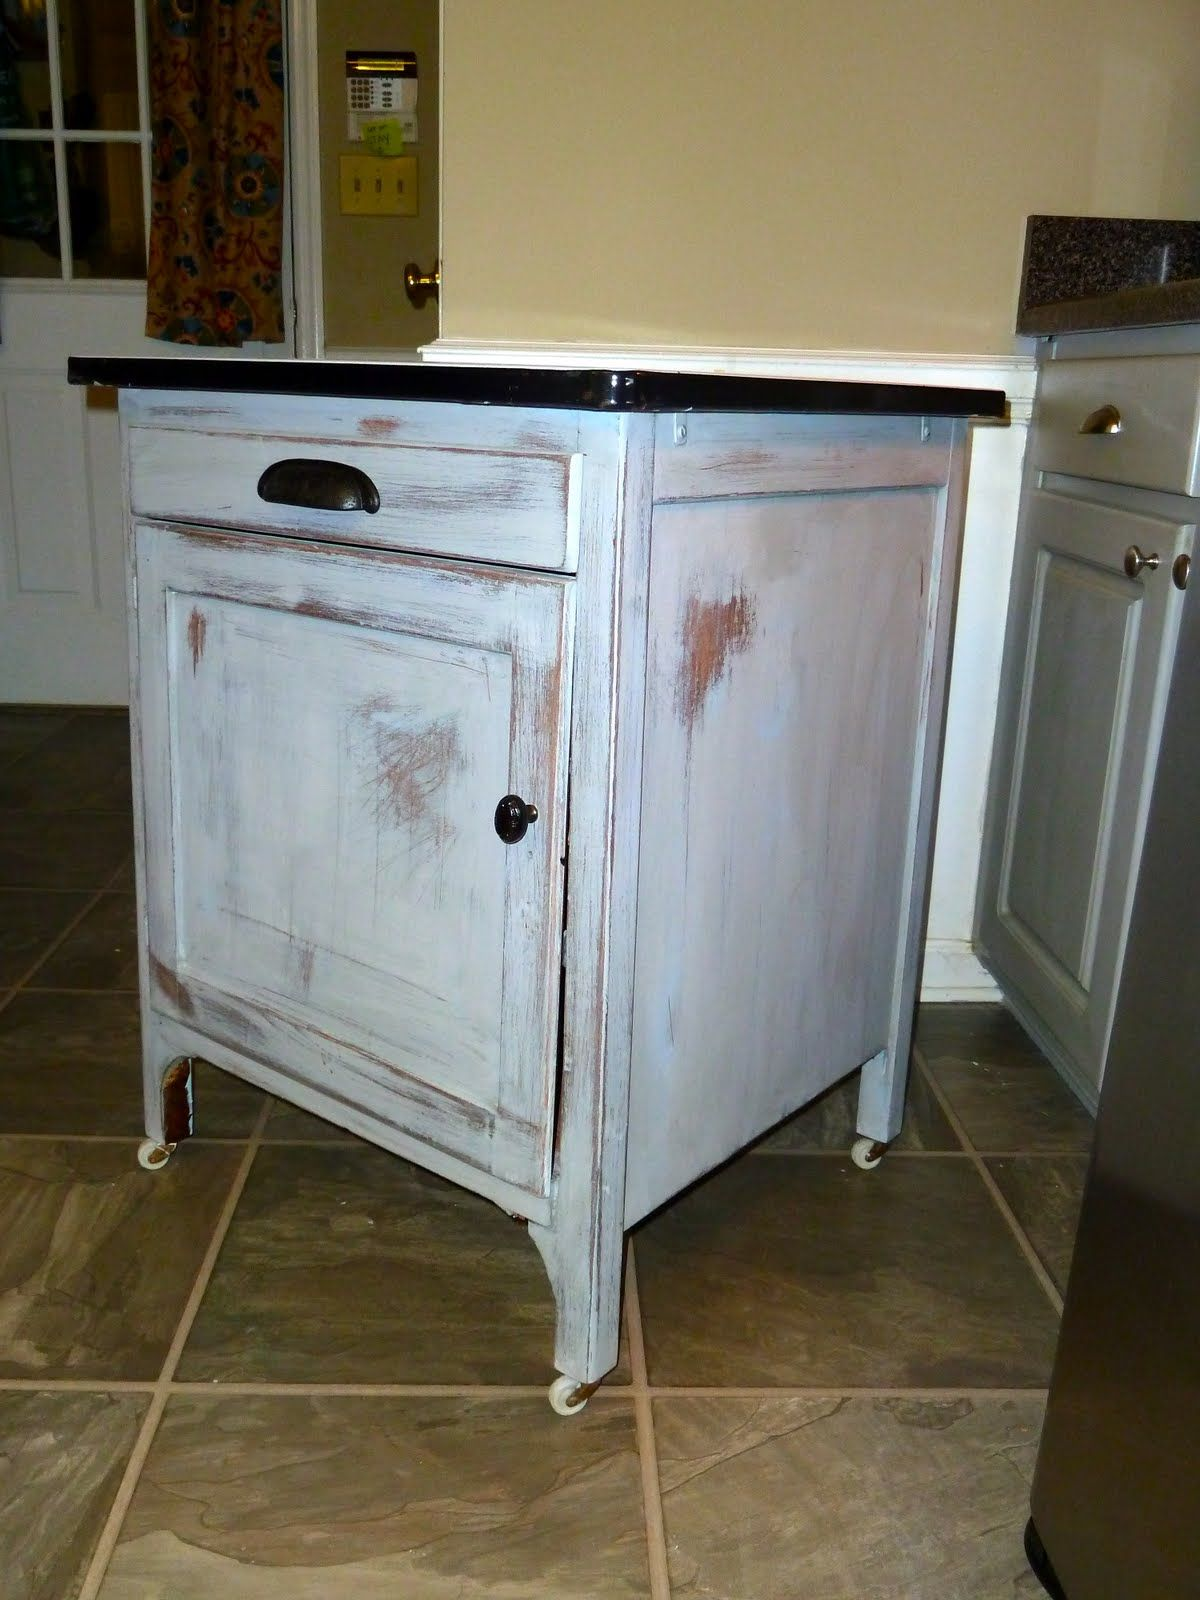 Nice A Client Brought Me This Really Cool Vintage Enamel Topped Cabinet To  Transform.